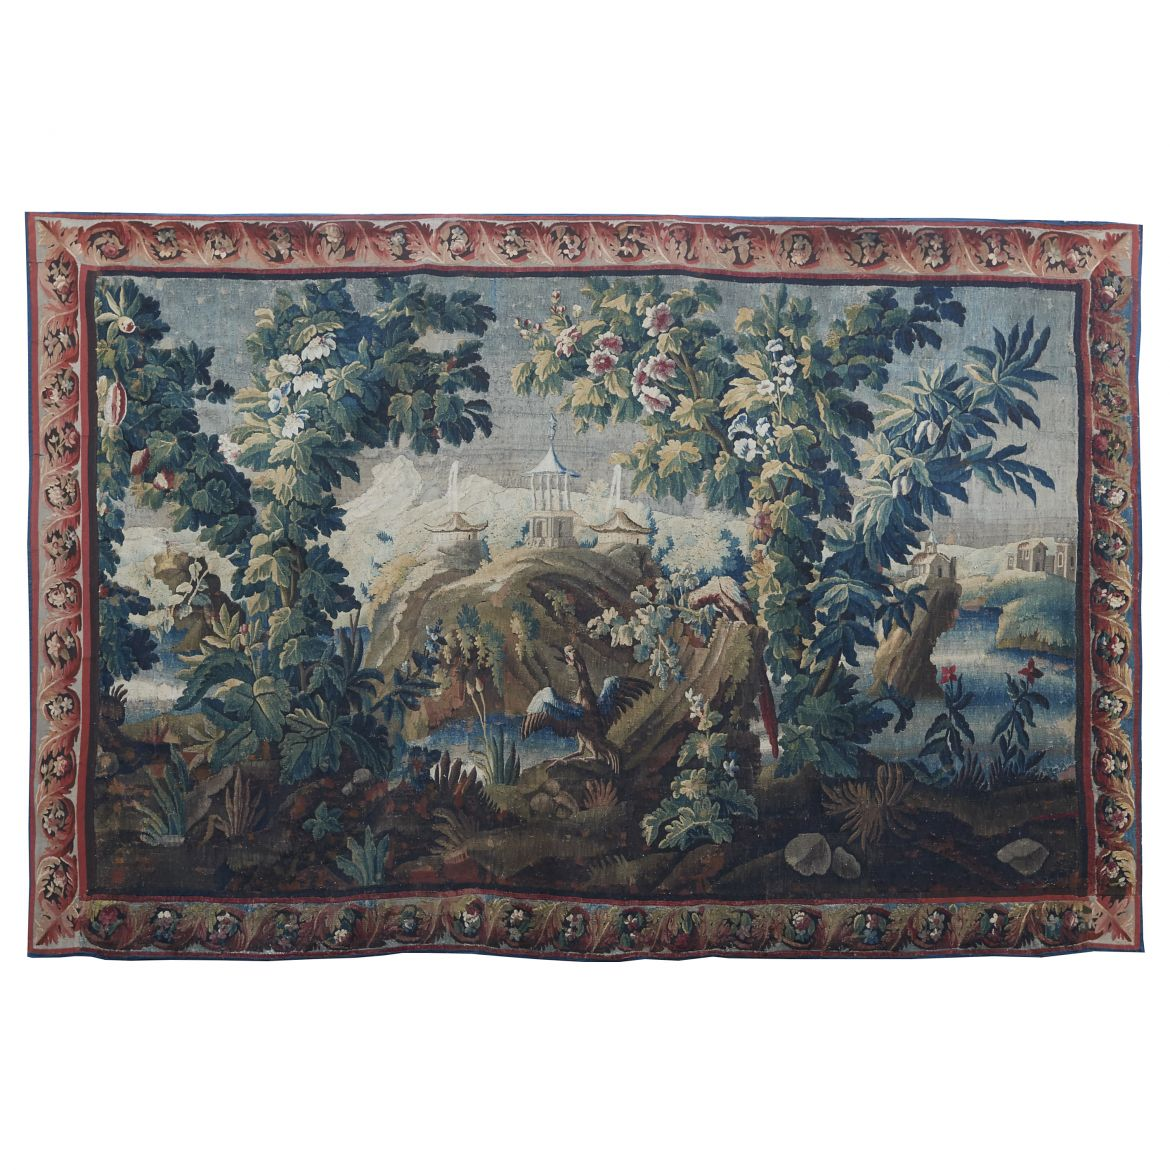 Large Aubusson Tapestry with Pagodas